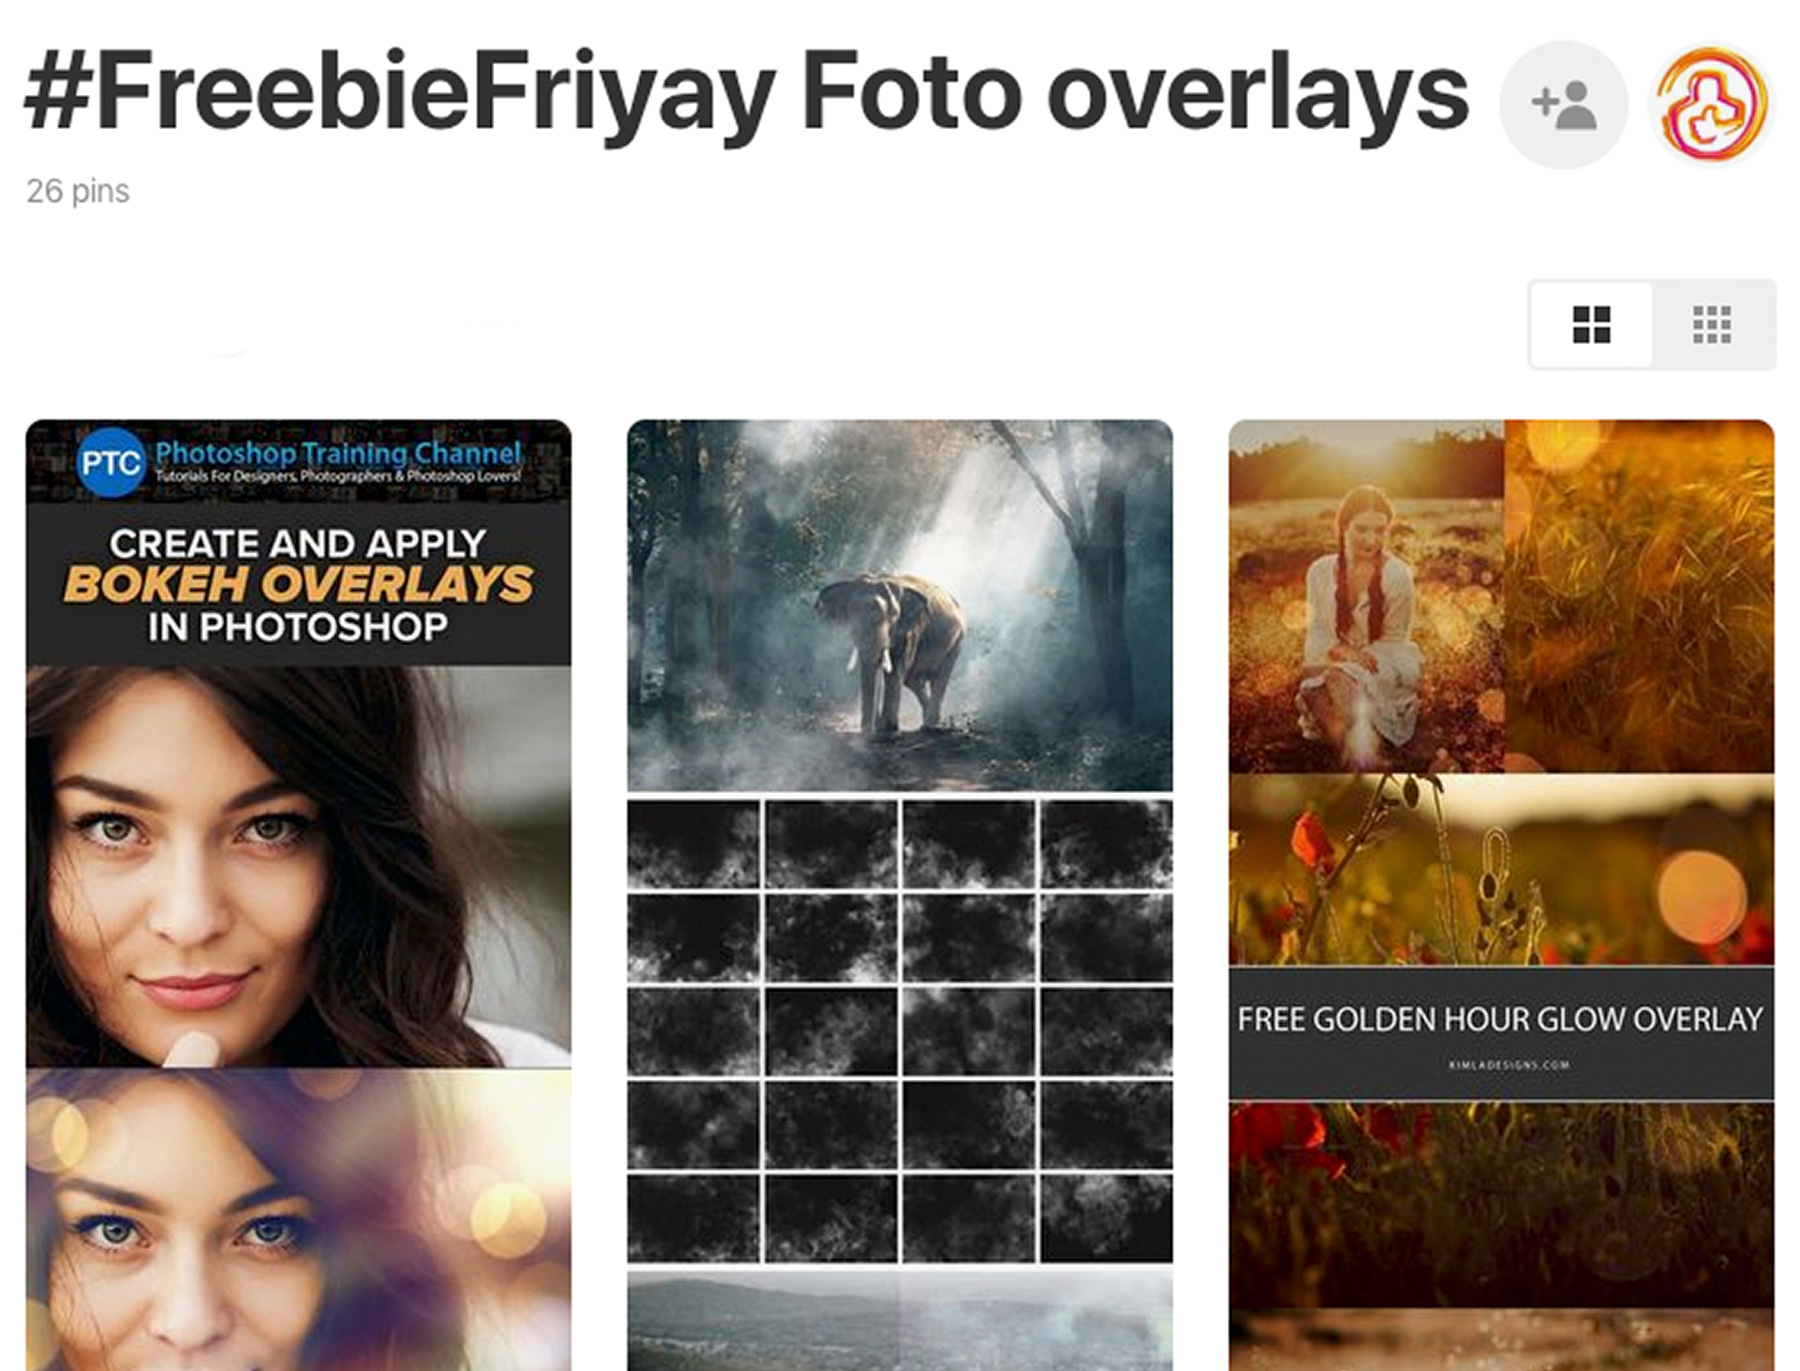 freebiefriyay-week-26 pinterest-photo-overlays